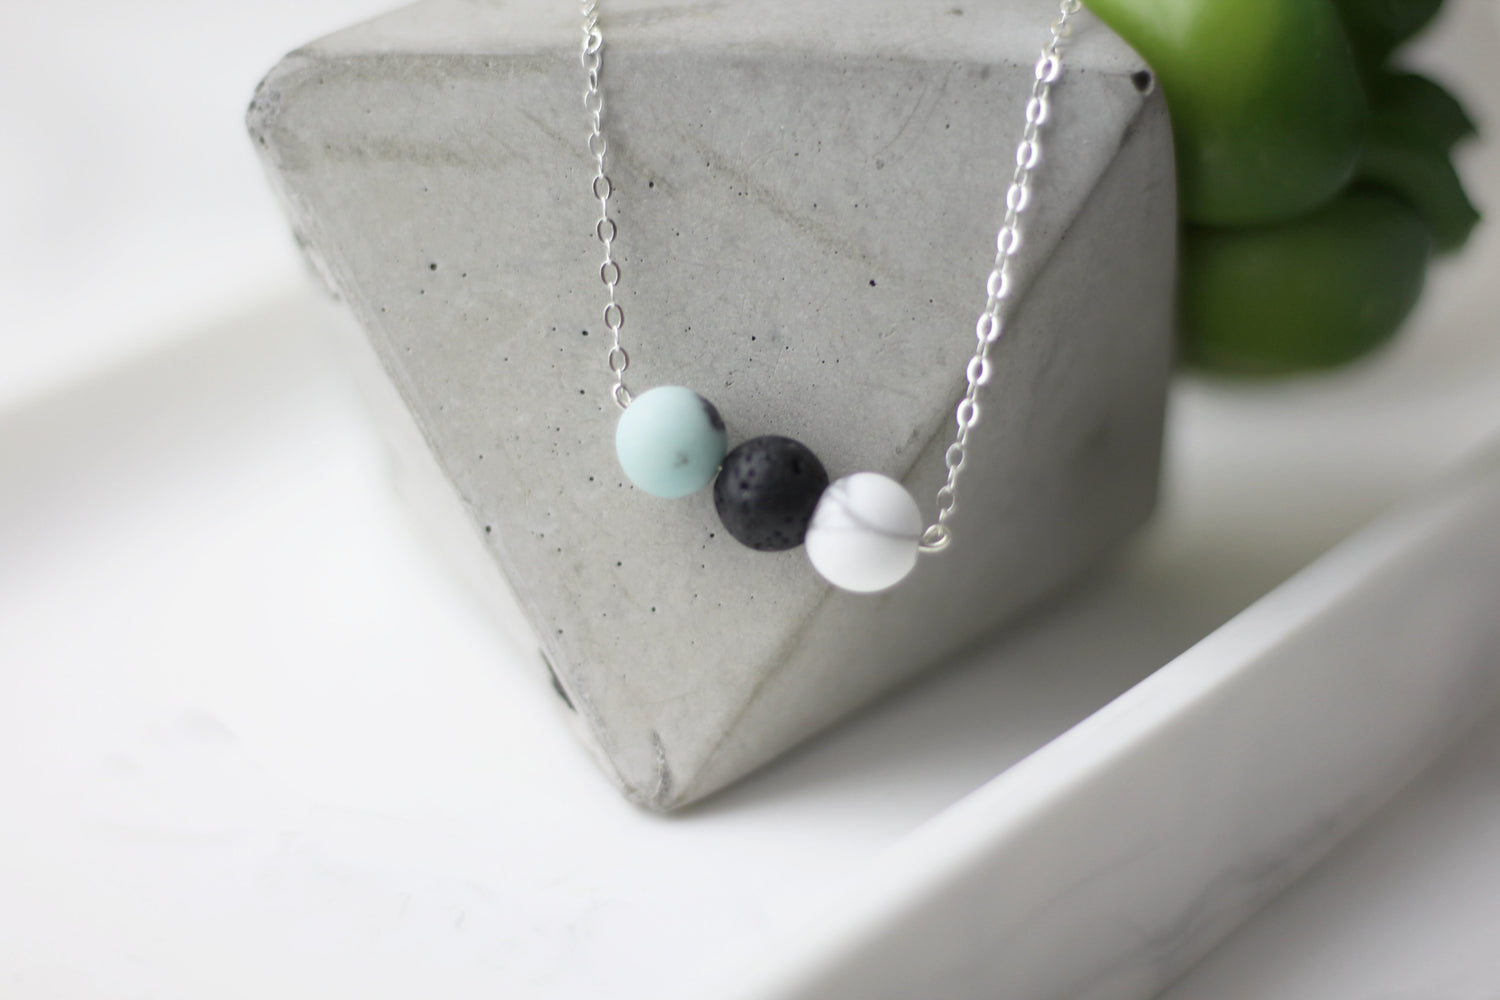 Emotions Control Lava Beads Diffuser Necklace